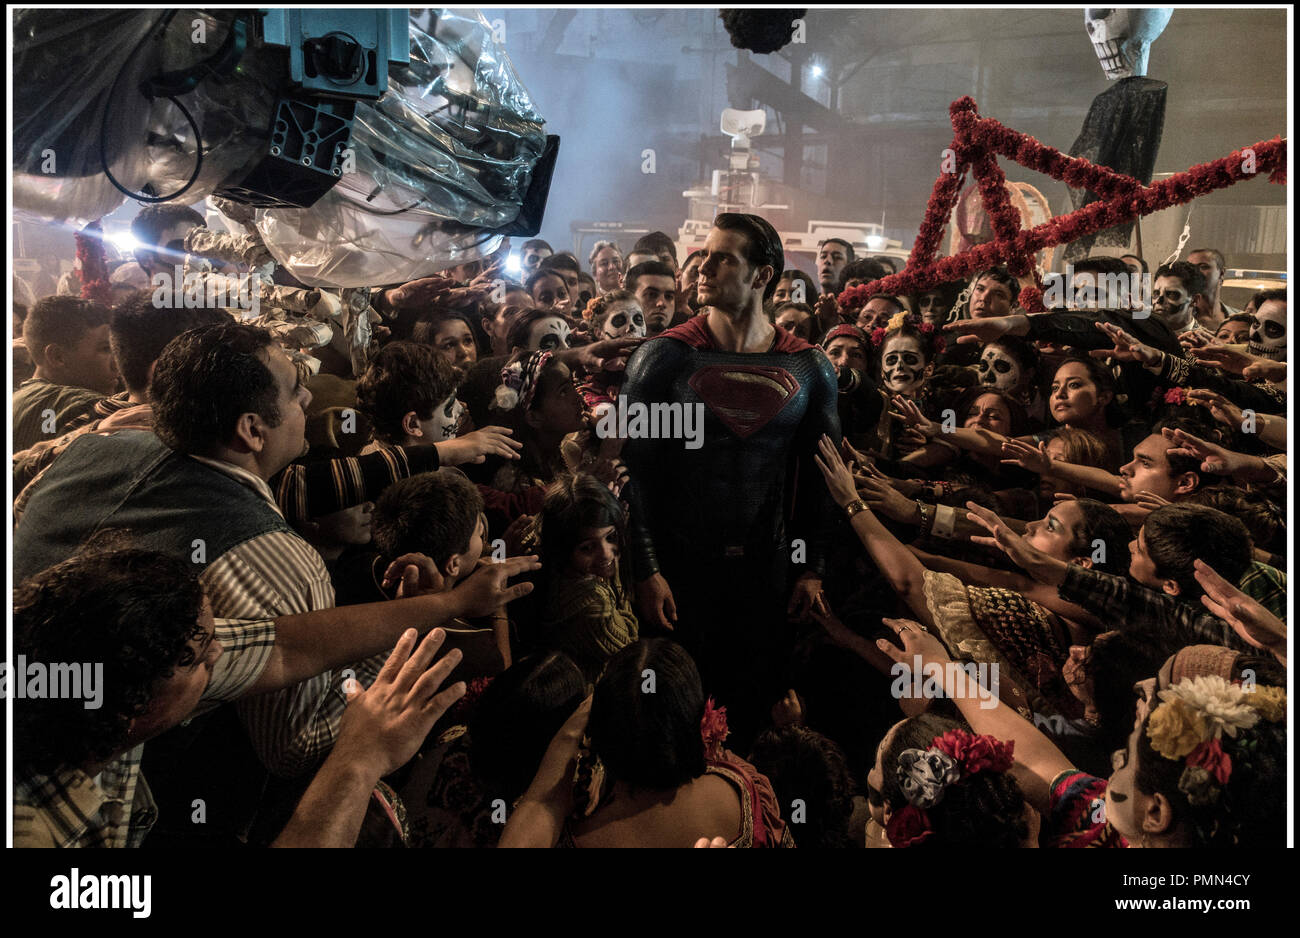 Prod DB © Warner Bros. - DC Entertainment - RatPac-Dune Entertainment - Syncopy / DR BATMAN V SUPERMAN: L'AUBE DE LA JUSTICE (BATMAN VS. SUPERMAN: DAWN OF JUSTICE) de Zack Snyder 2016 USA avec Henry Cavill sur le tournage fete des morts, jour des morts, mexique, mexico - Stock Image